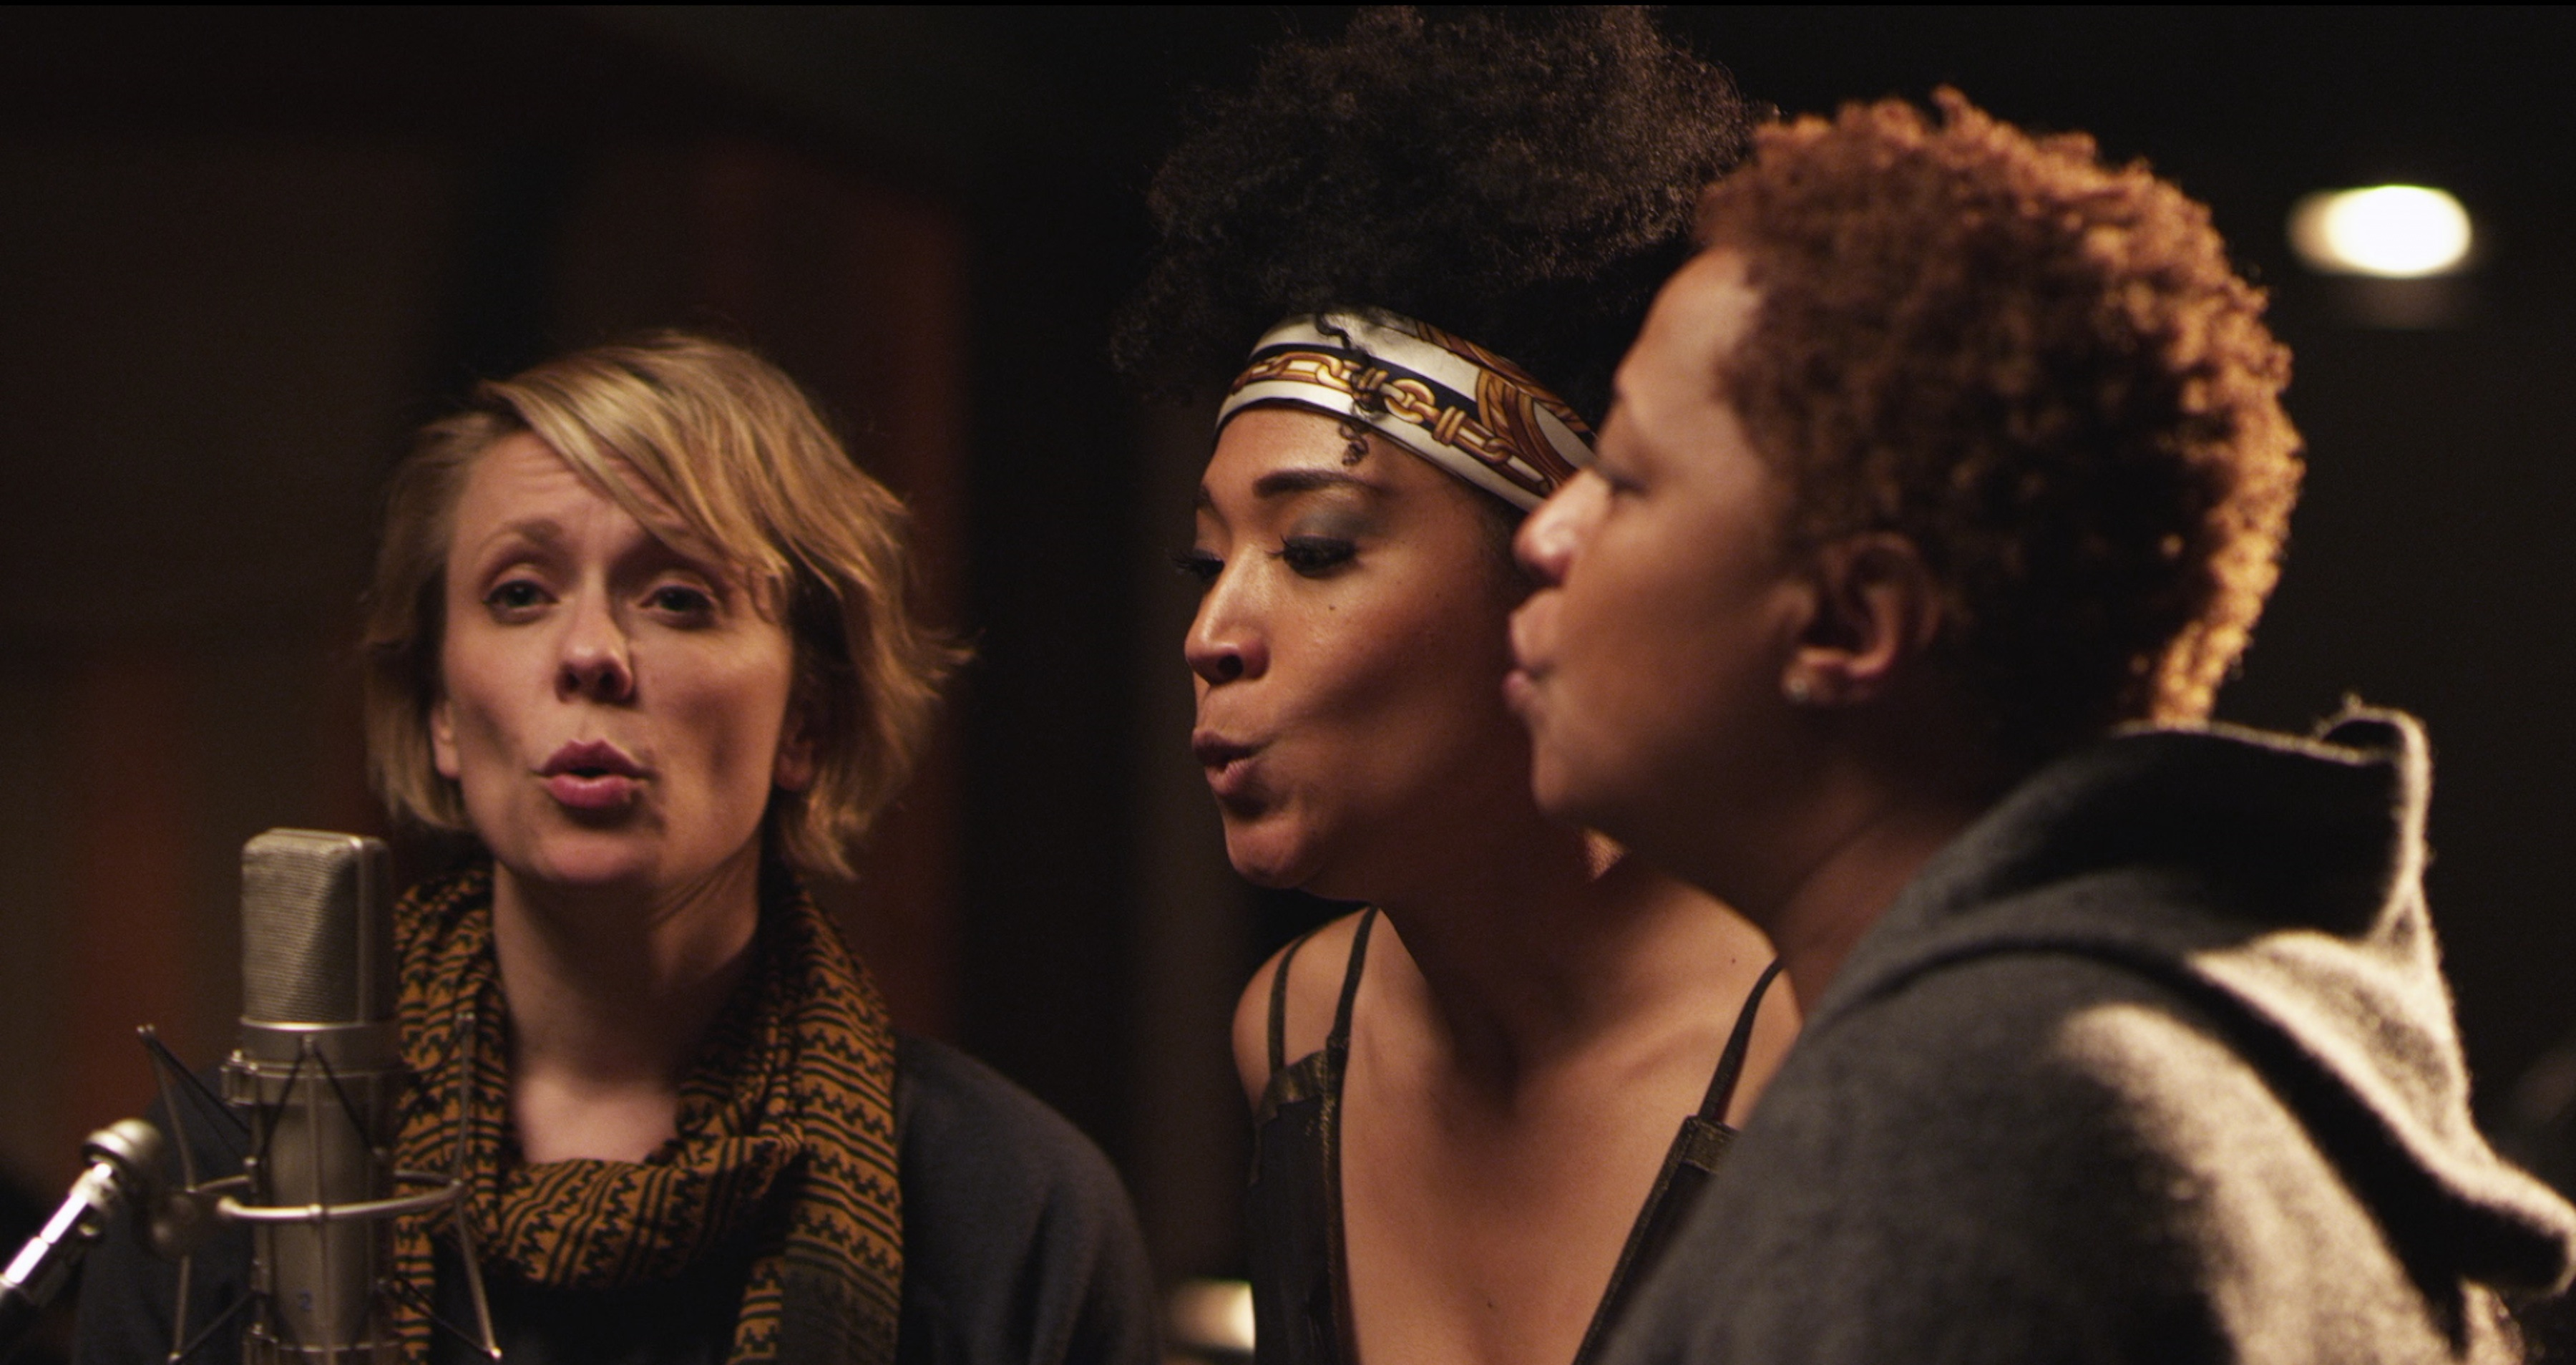 20 Feet From Stardom film review